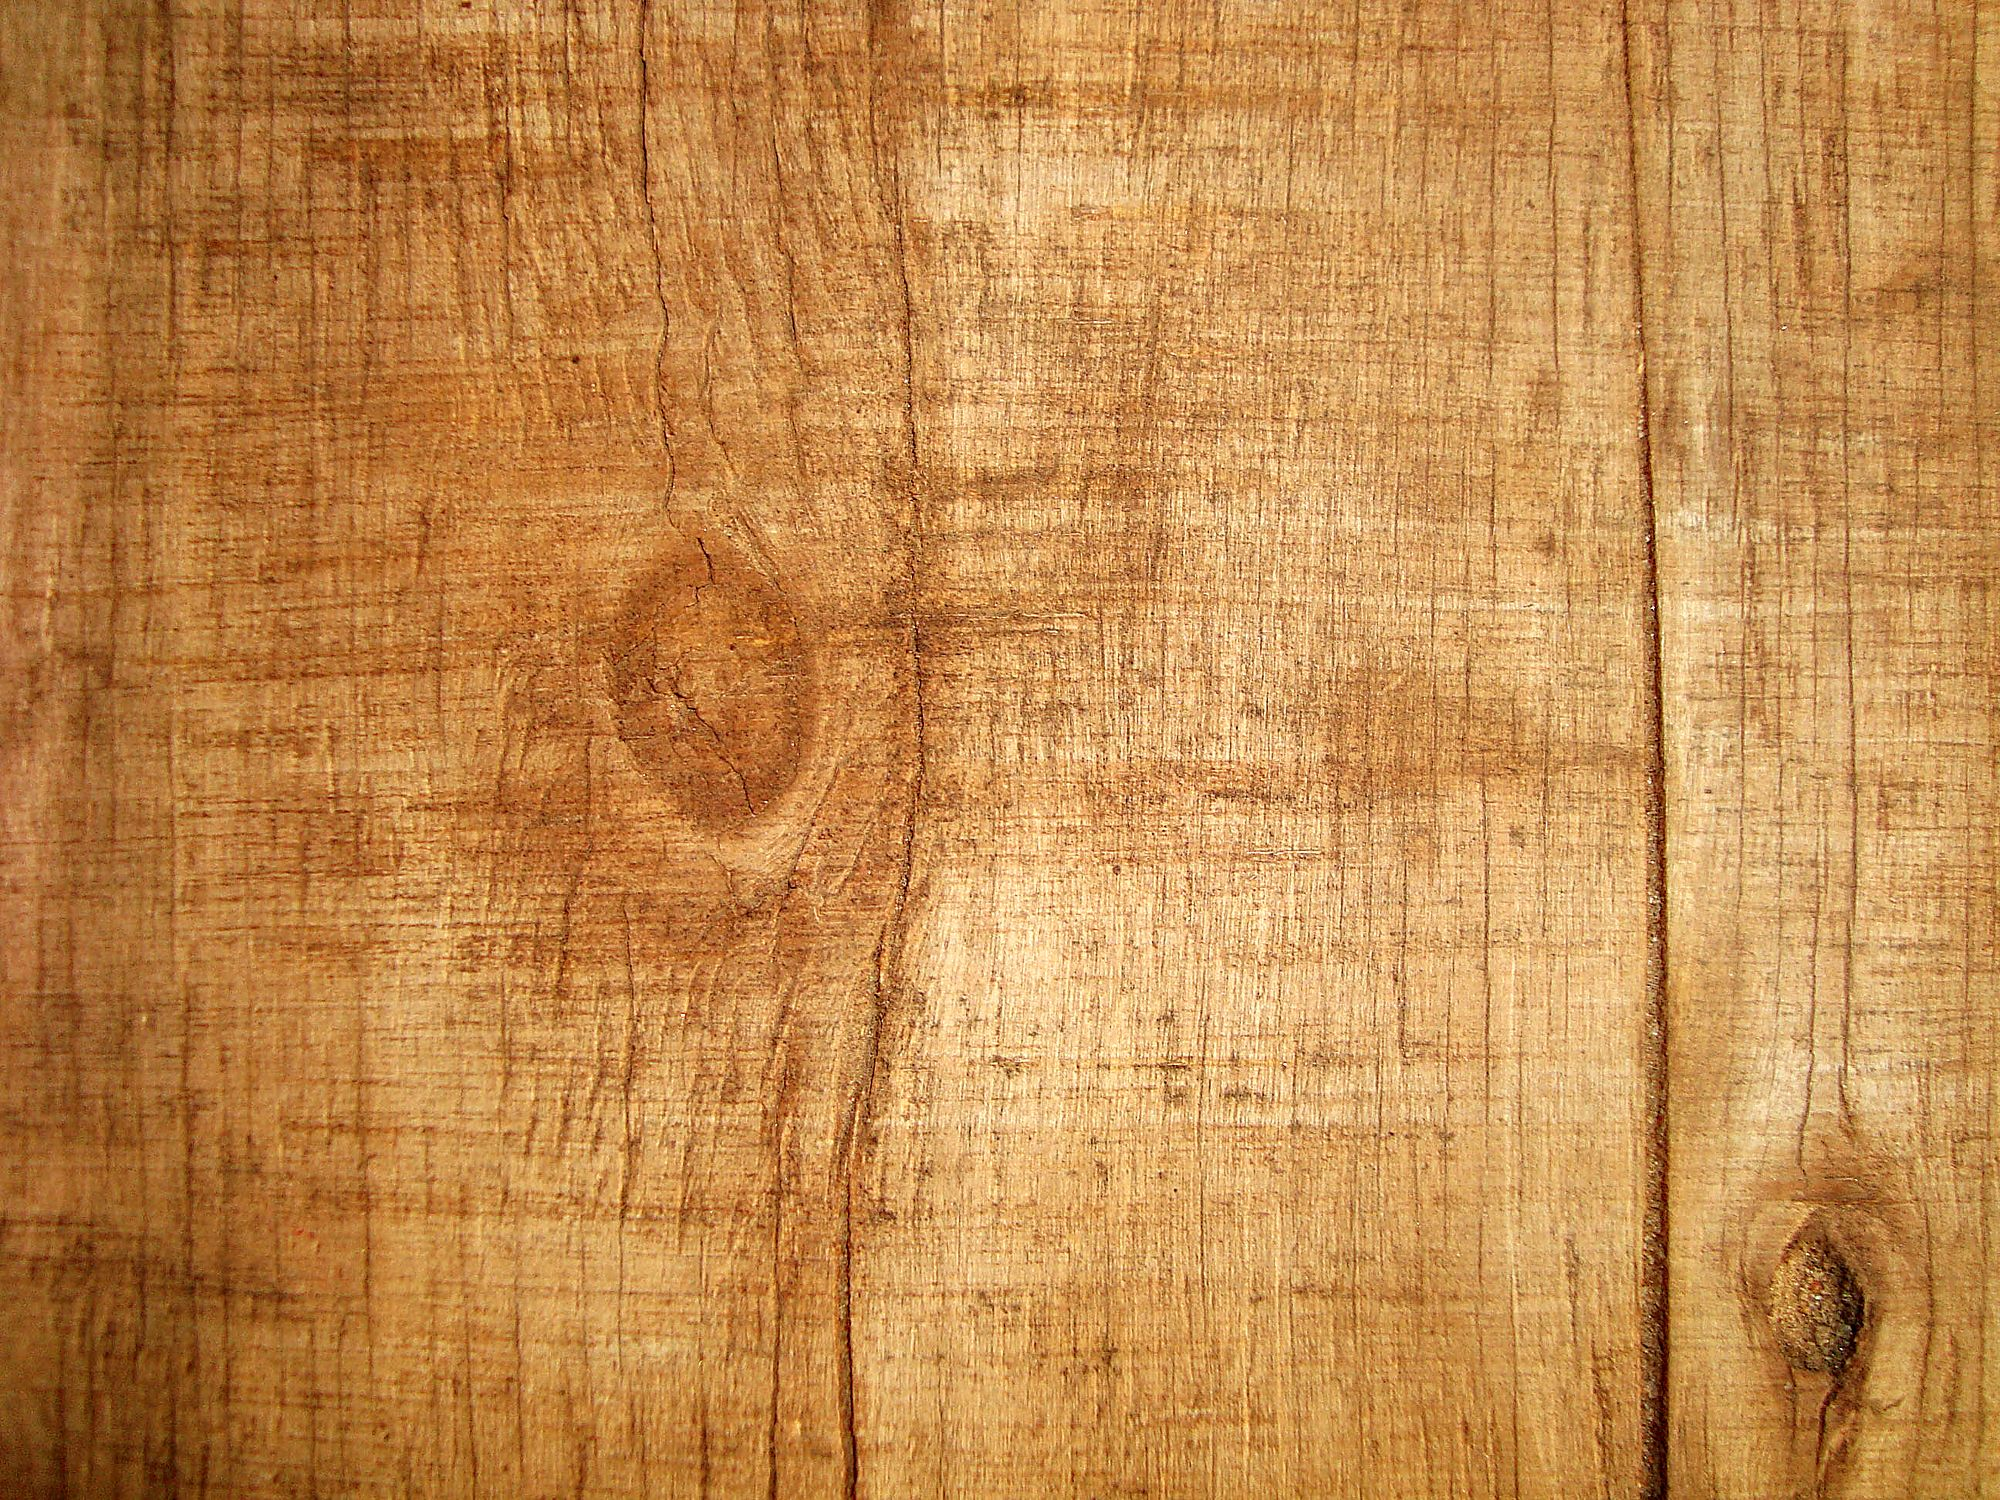 background wood texture   Free Wood Texture (12) - Mighty Backgrounds